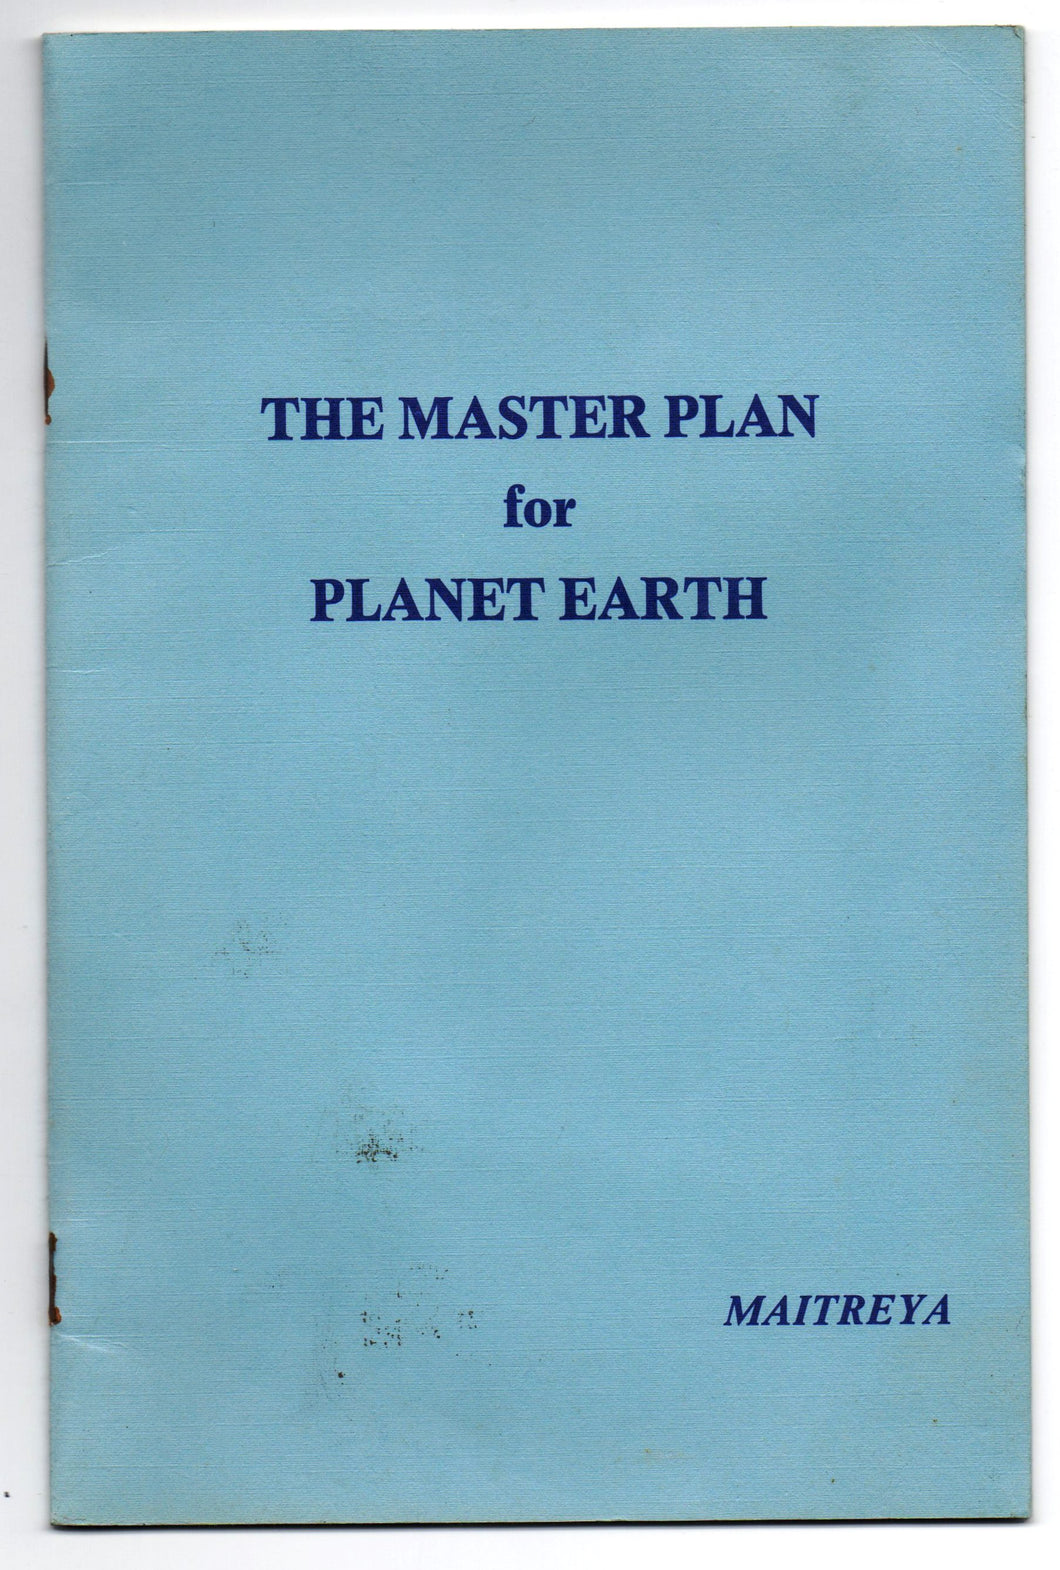 The Master Plan for Planet Earth